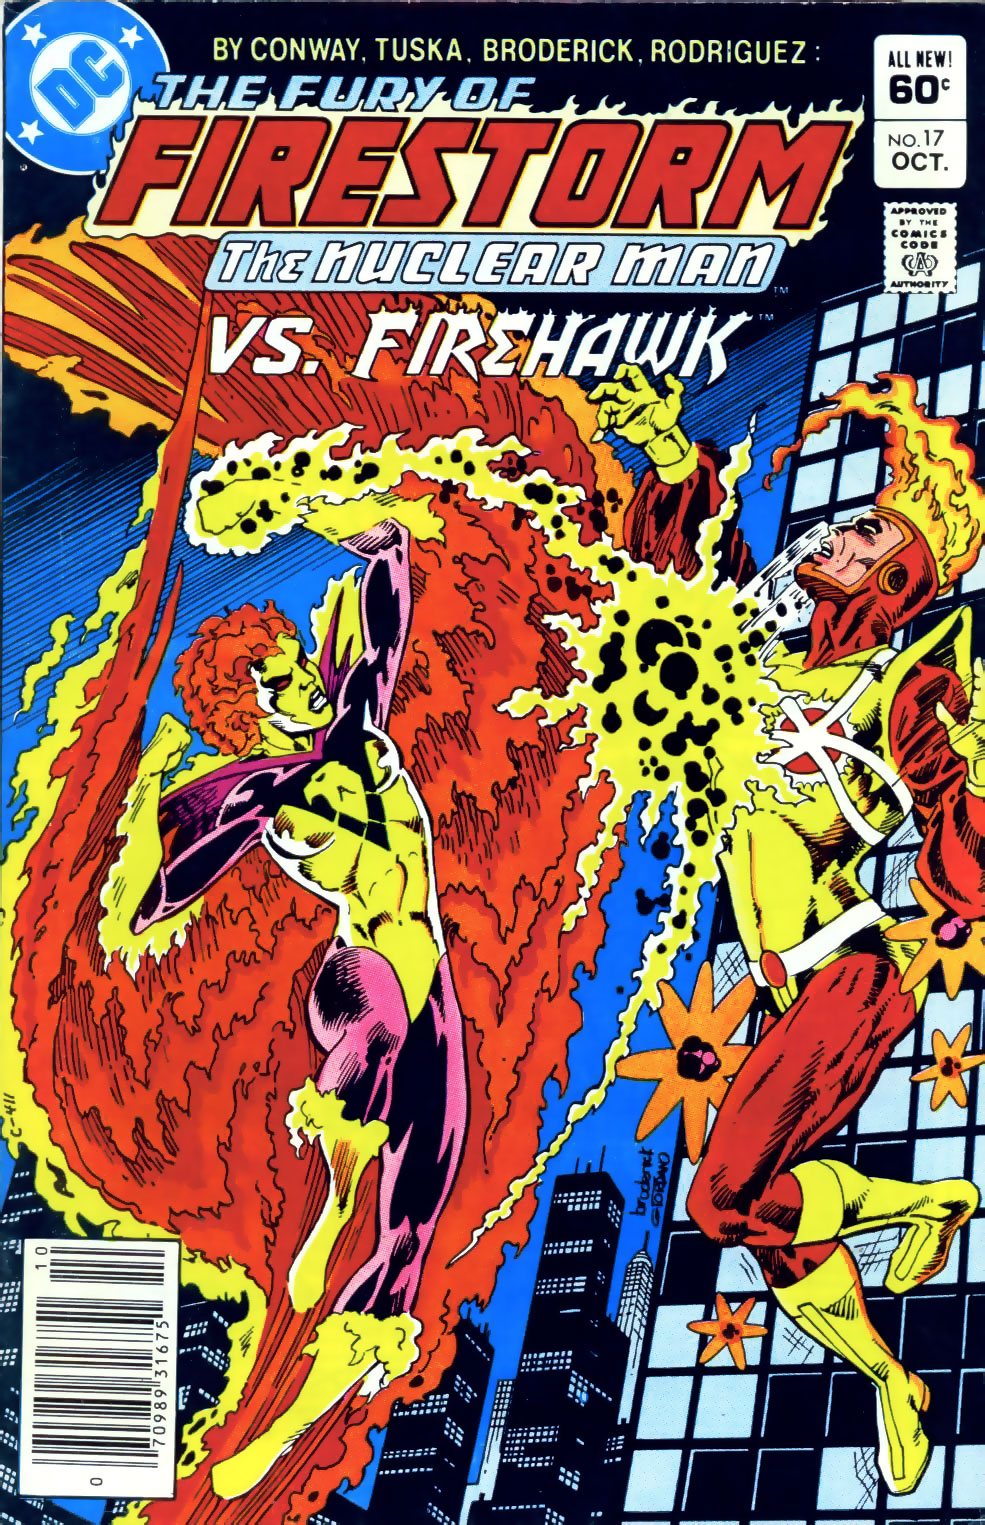 Fury of Firestorm the Nuclear Man #17 cover by Pat Broderick featuring Firehawk